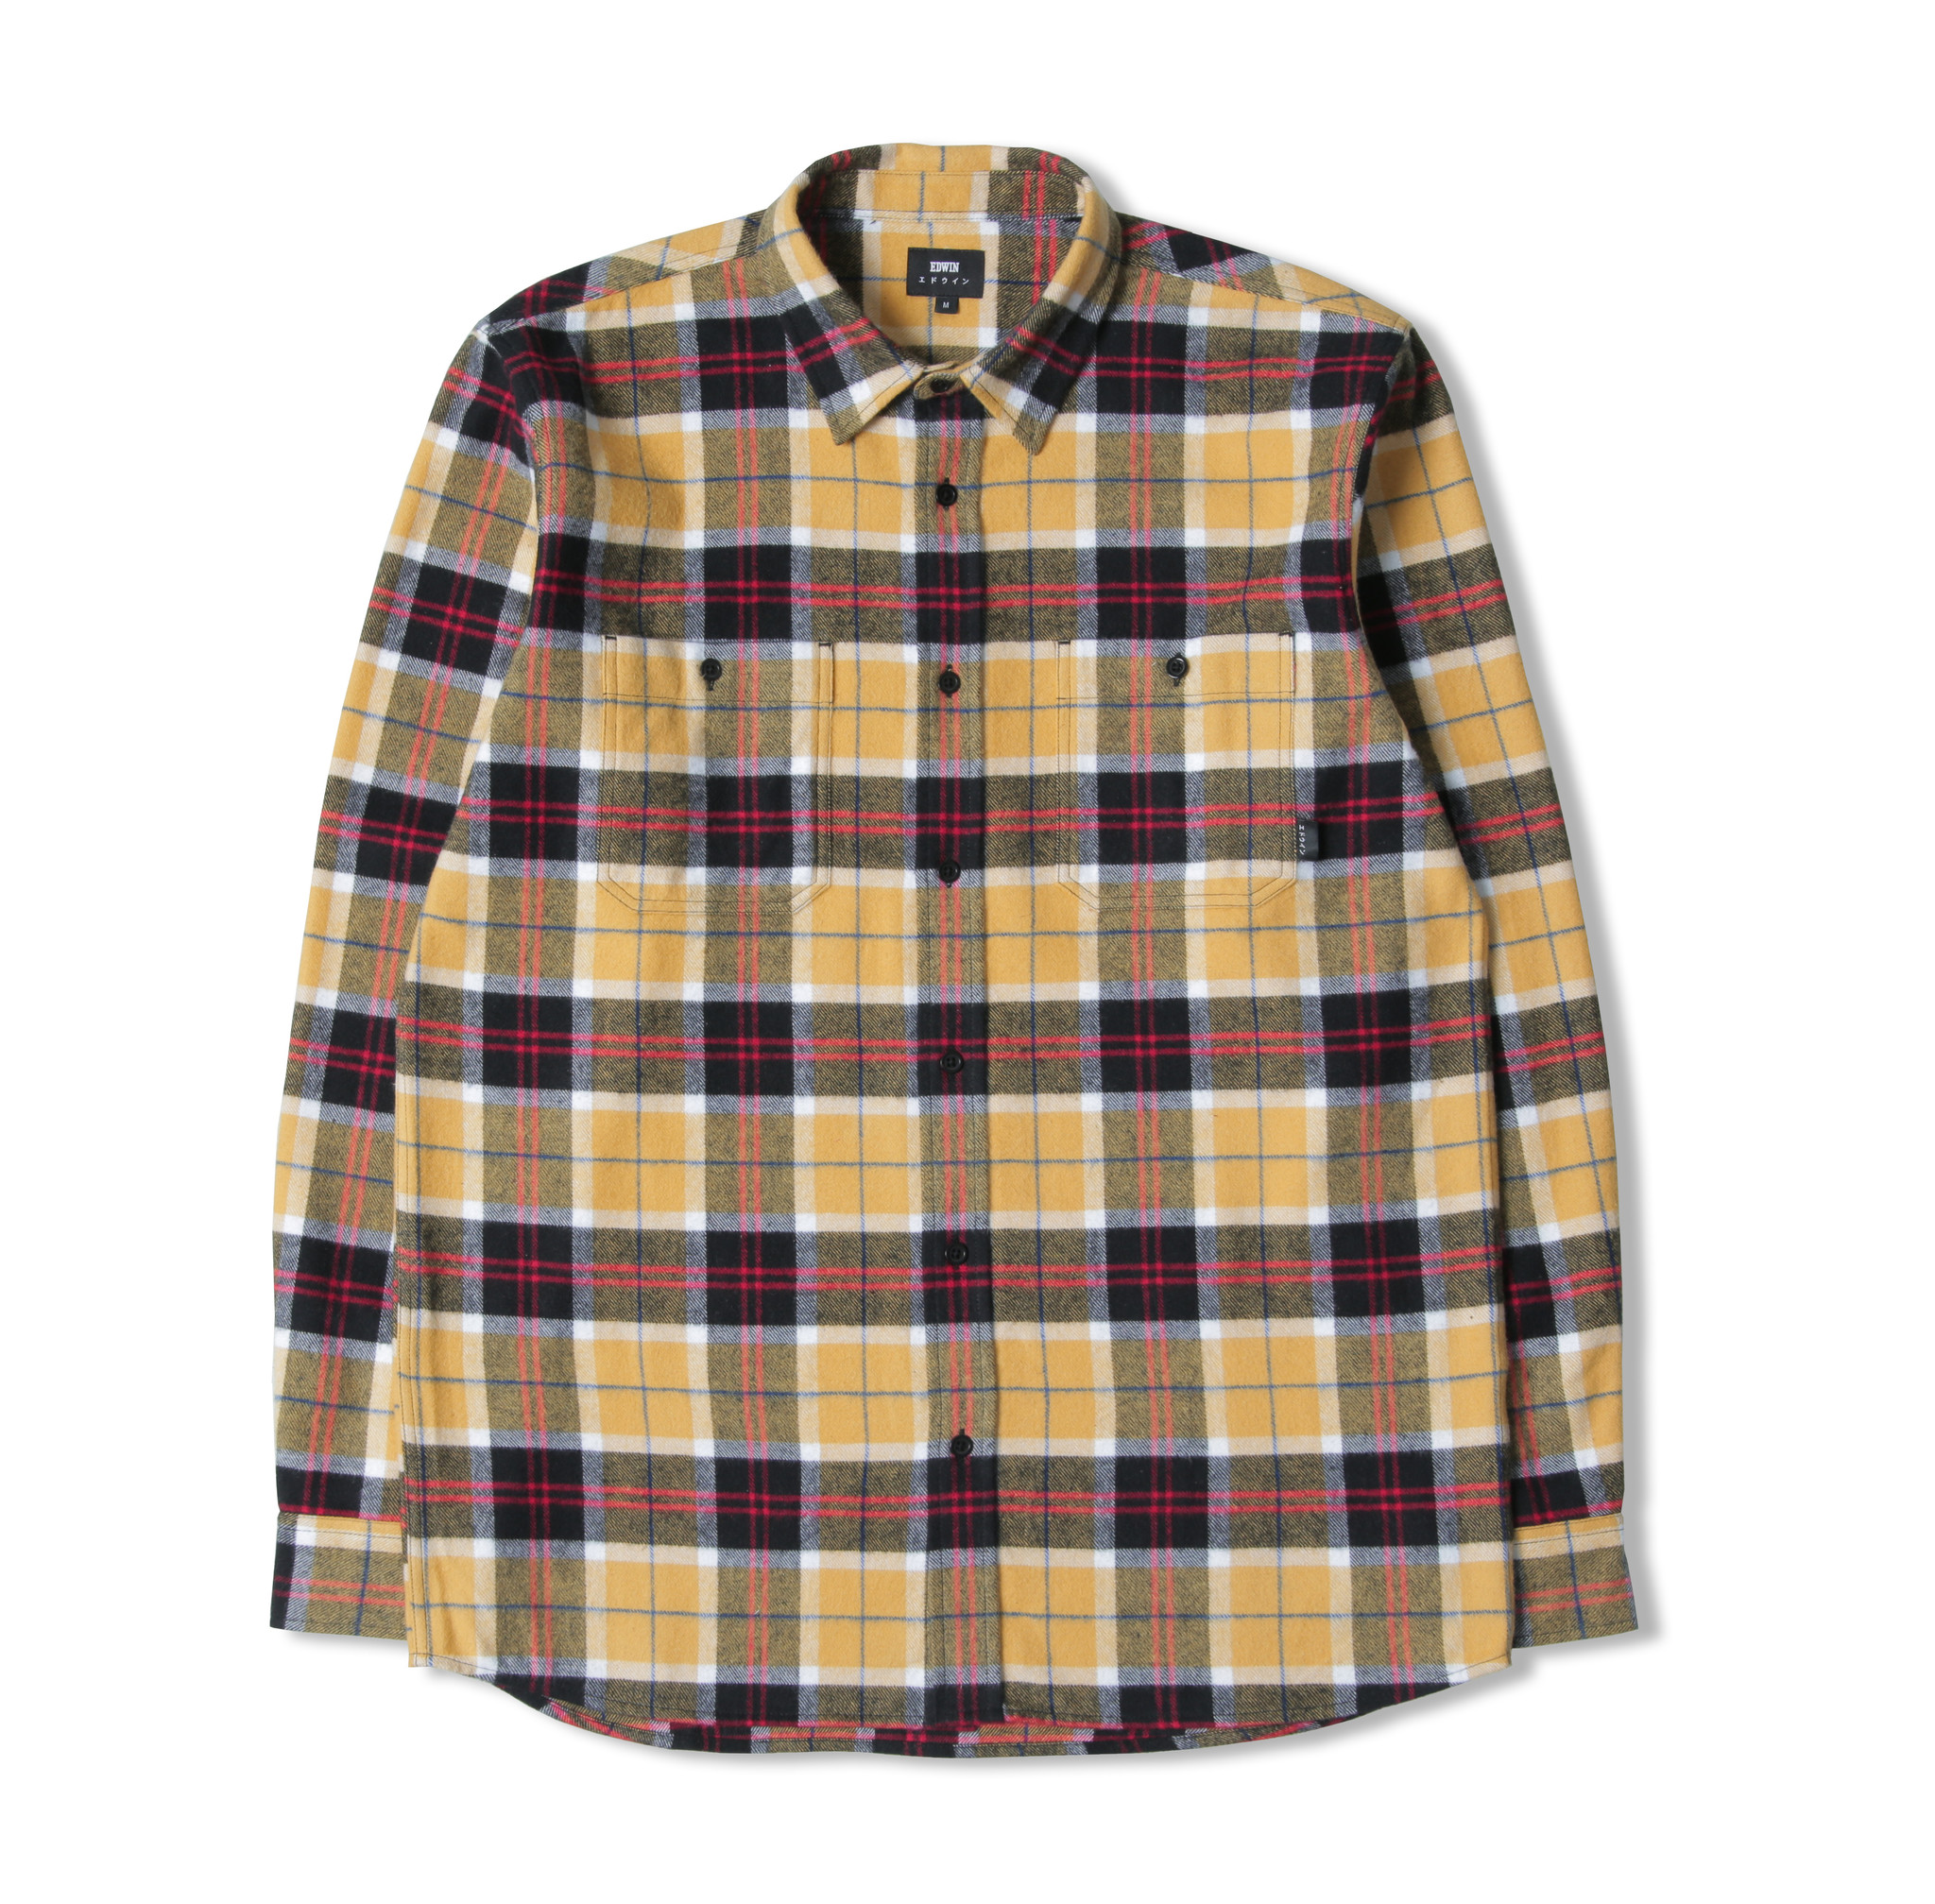 Labour Shirt Heavy Brushed Cotton Flannel Yellow Black-1